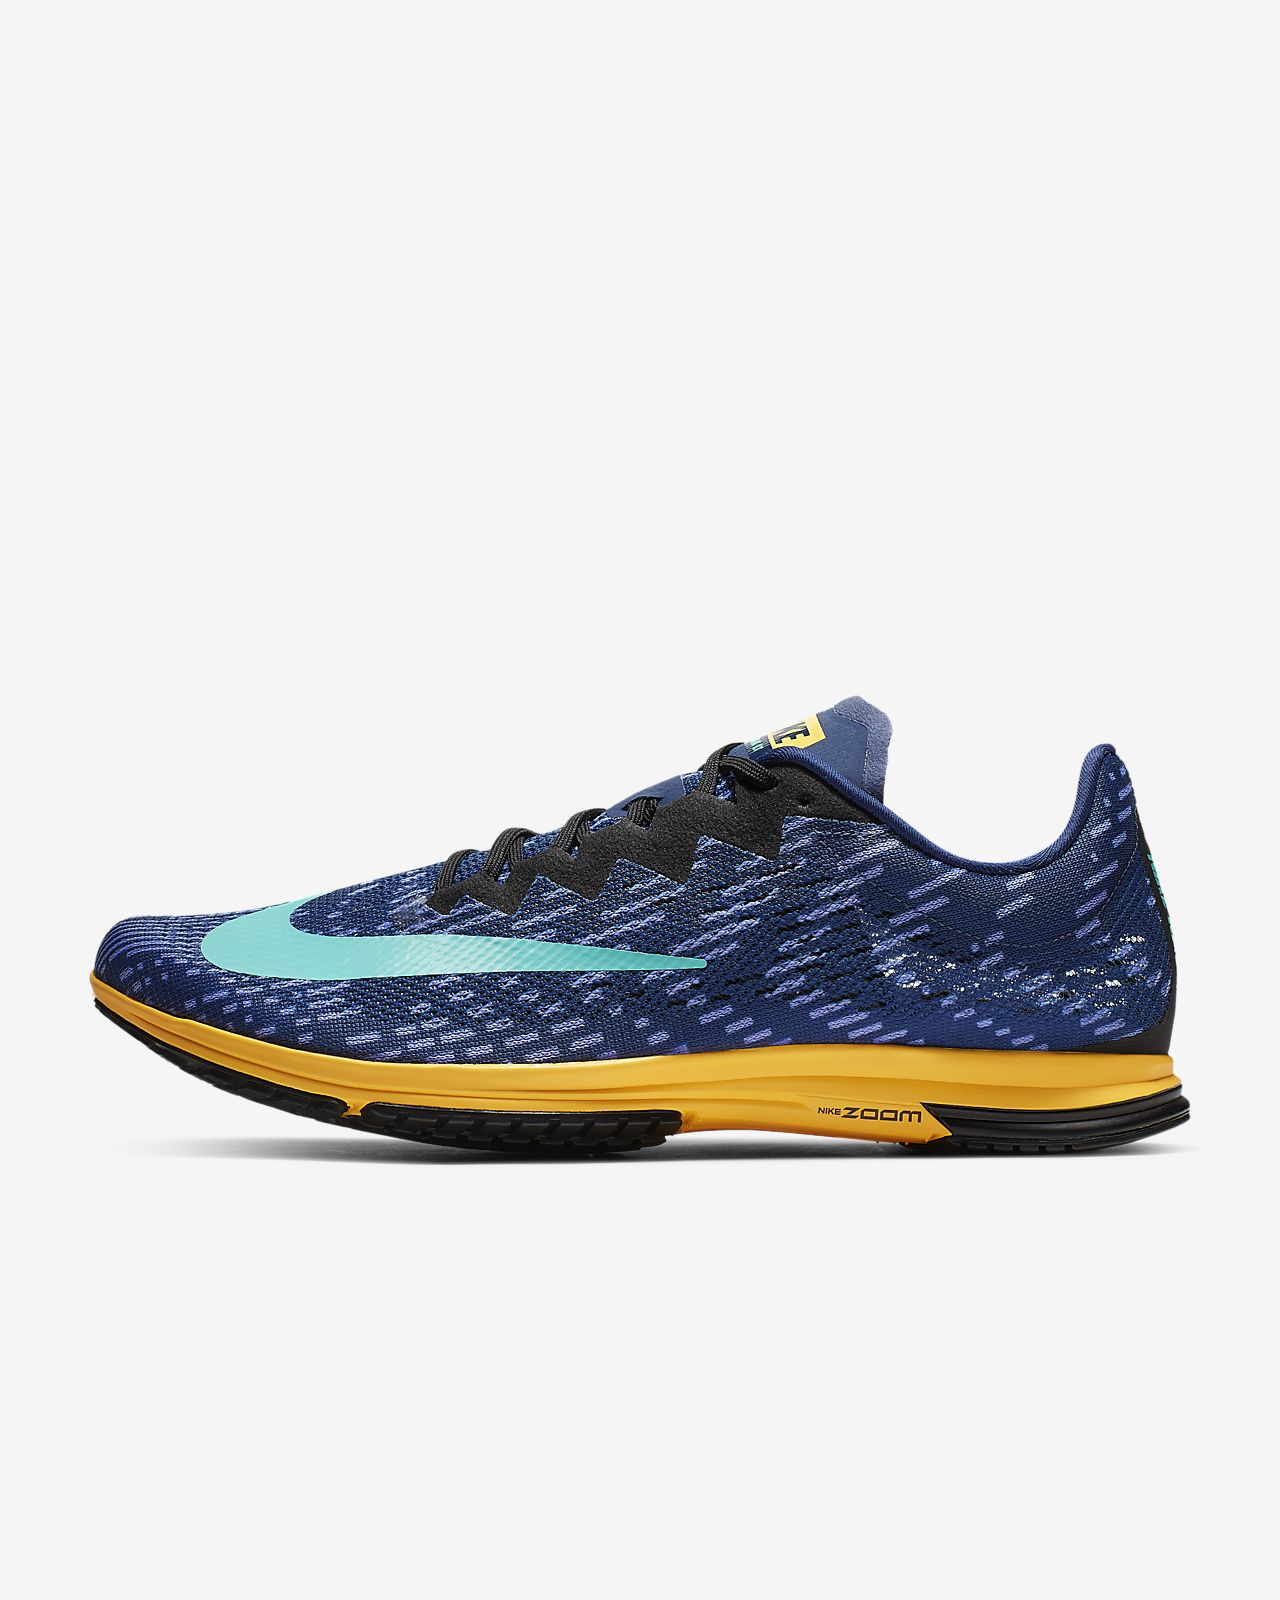 Nike Air Zoom Streak LT 4 Racing Shoe